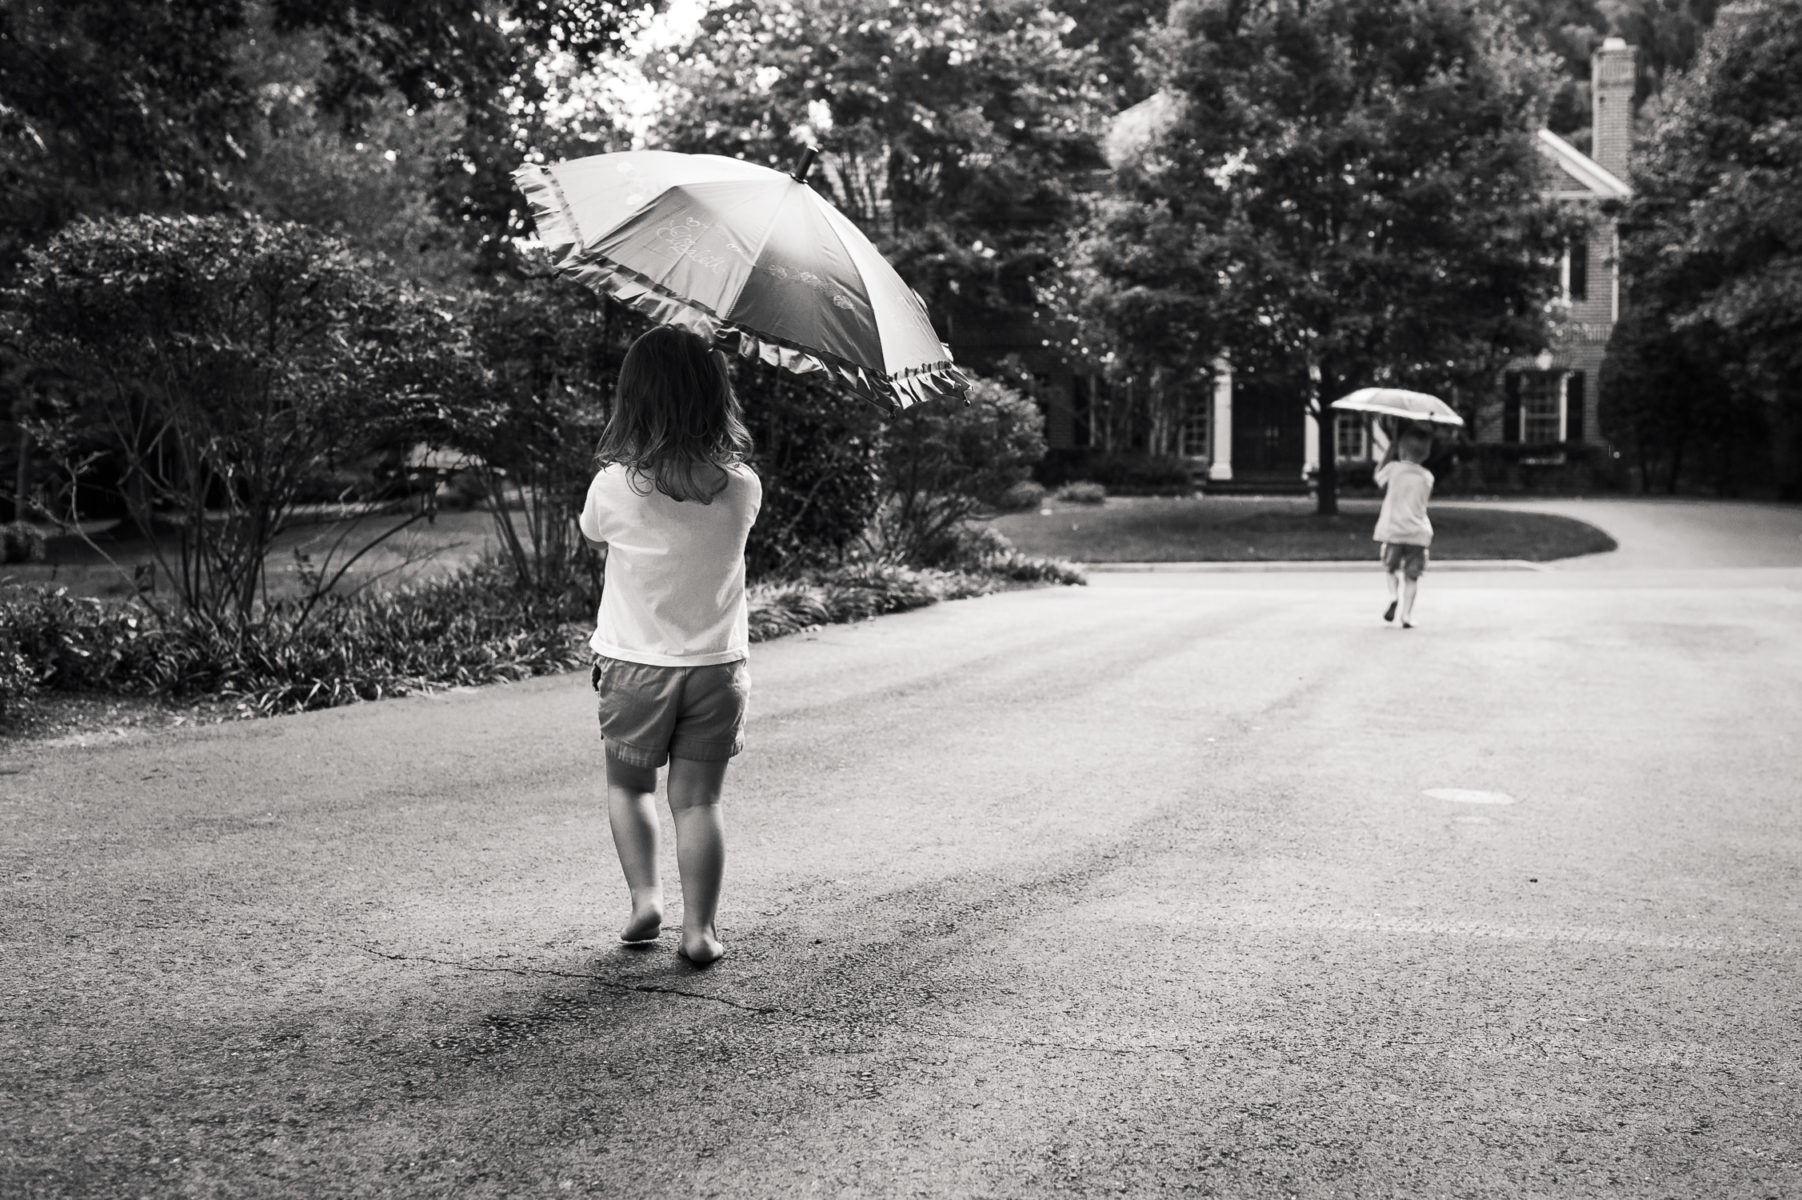 brother and sister playing with umbrellas in the driveway